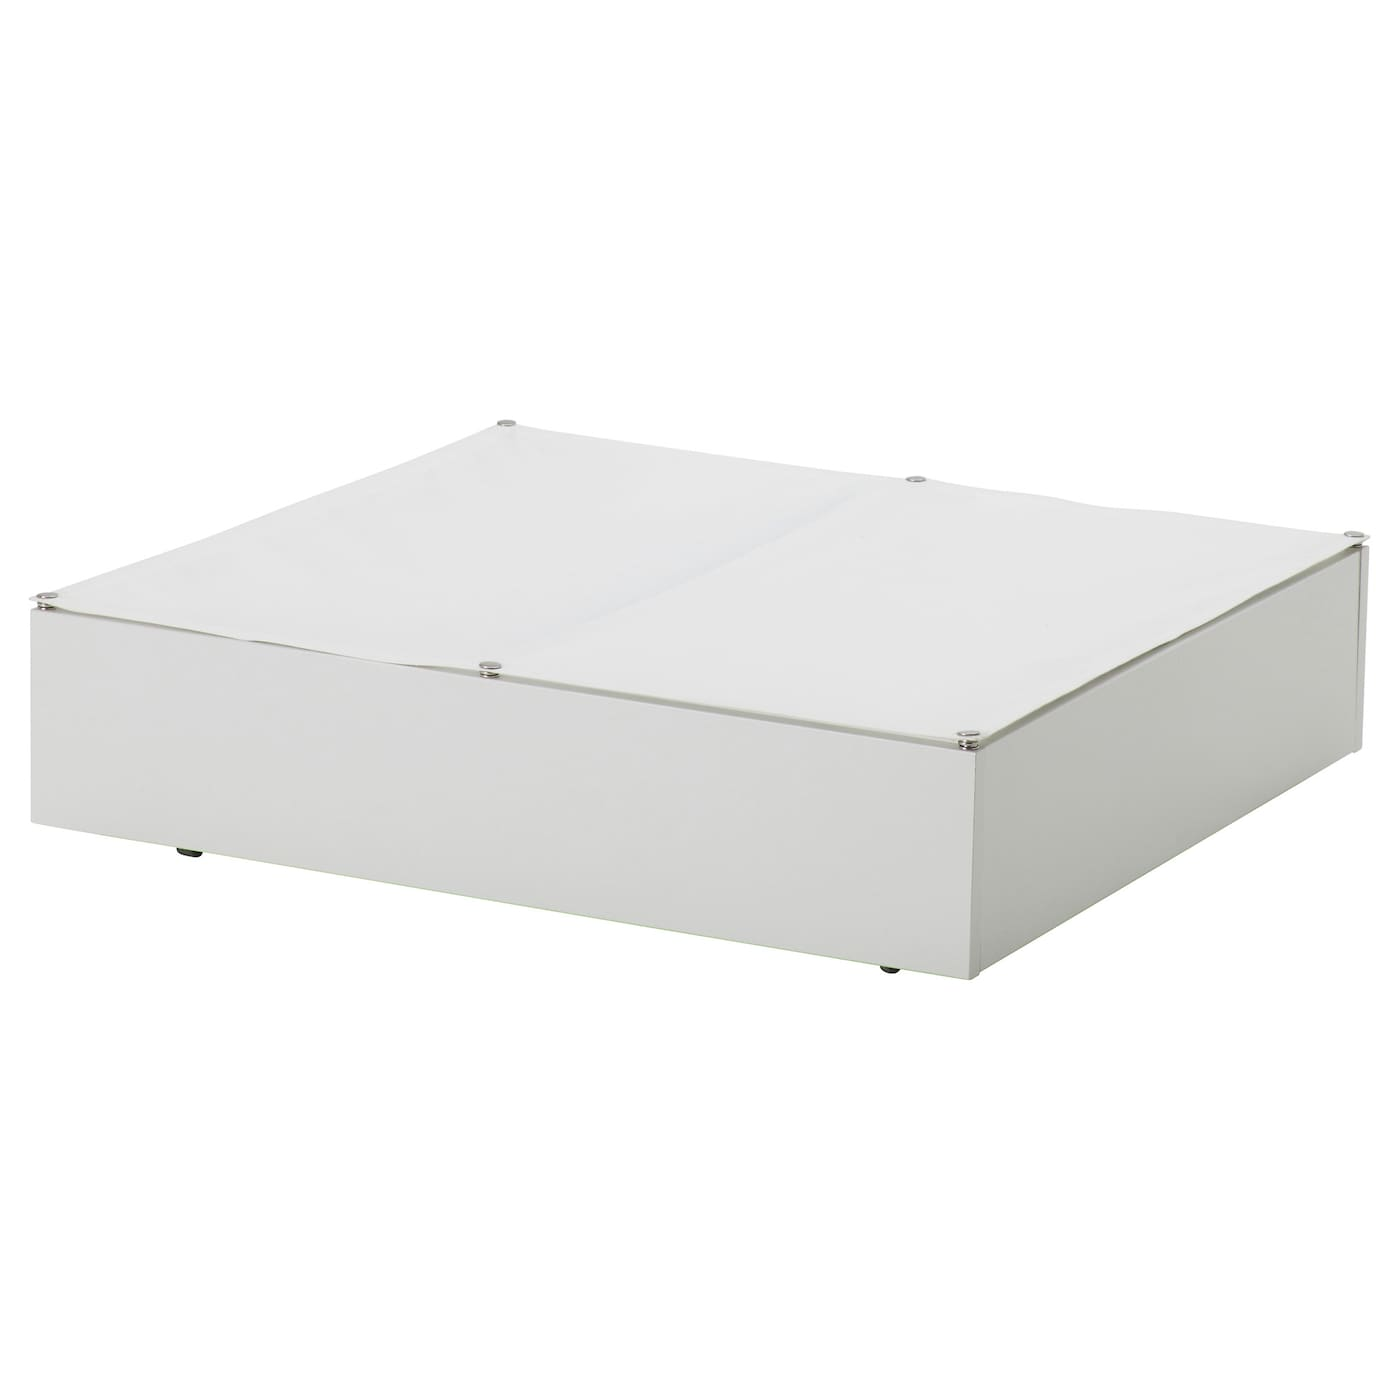 askvoll cadre de lit blanc 160 x 200 cm ikea. Black Bedroom Furniture Sets. Home Design Ideas